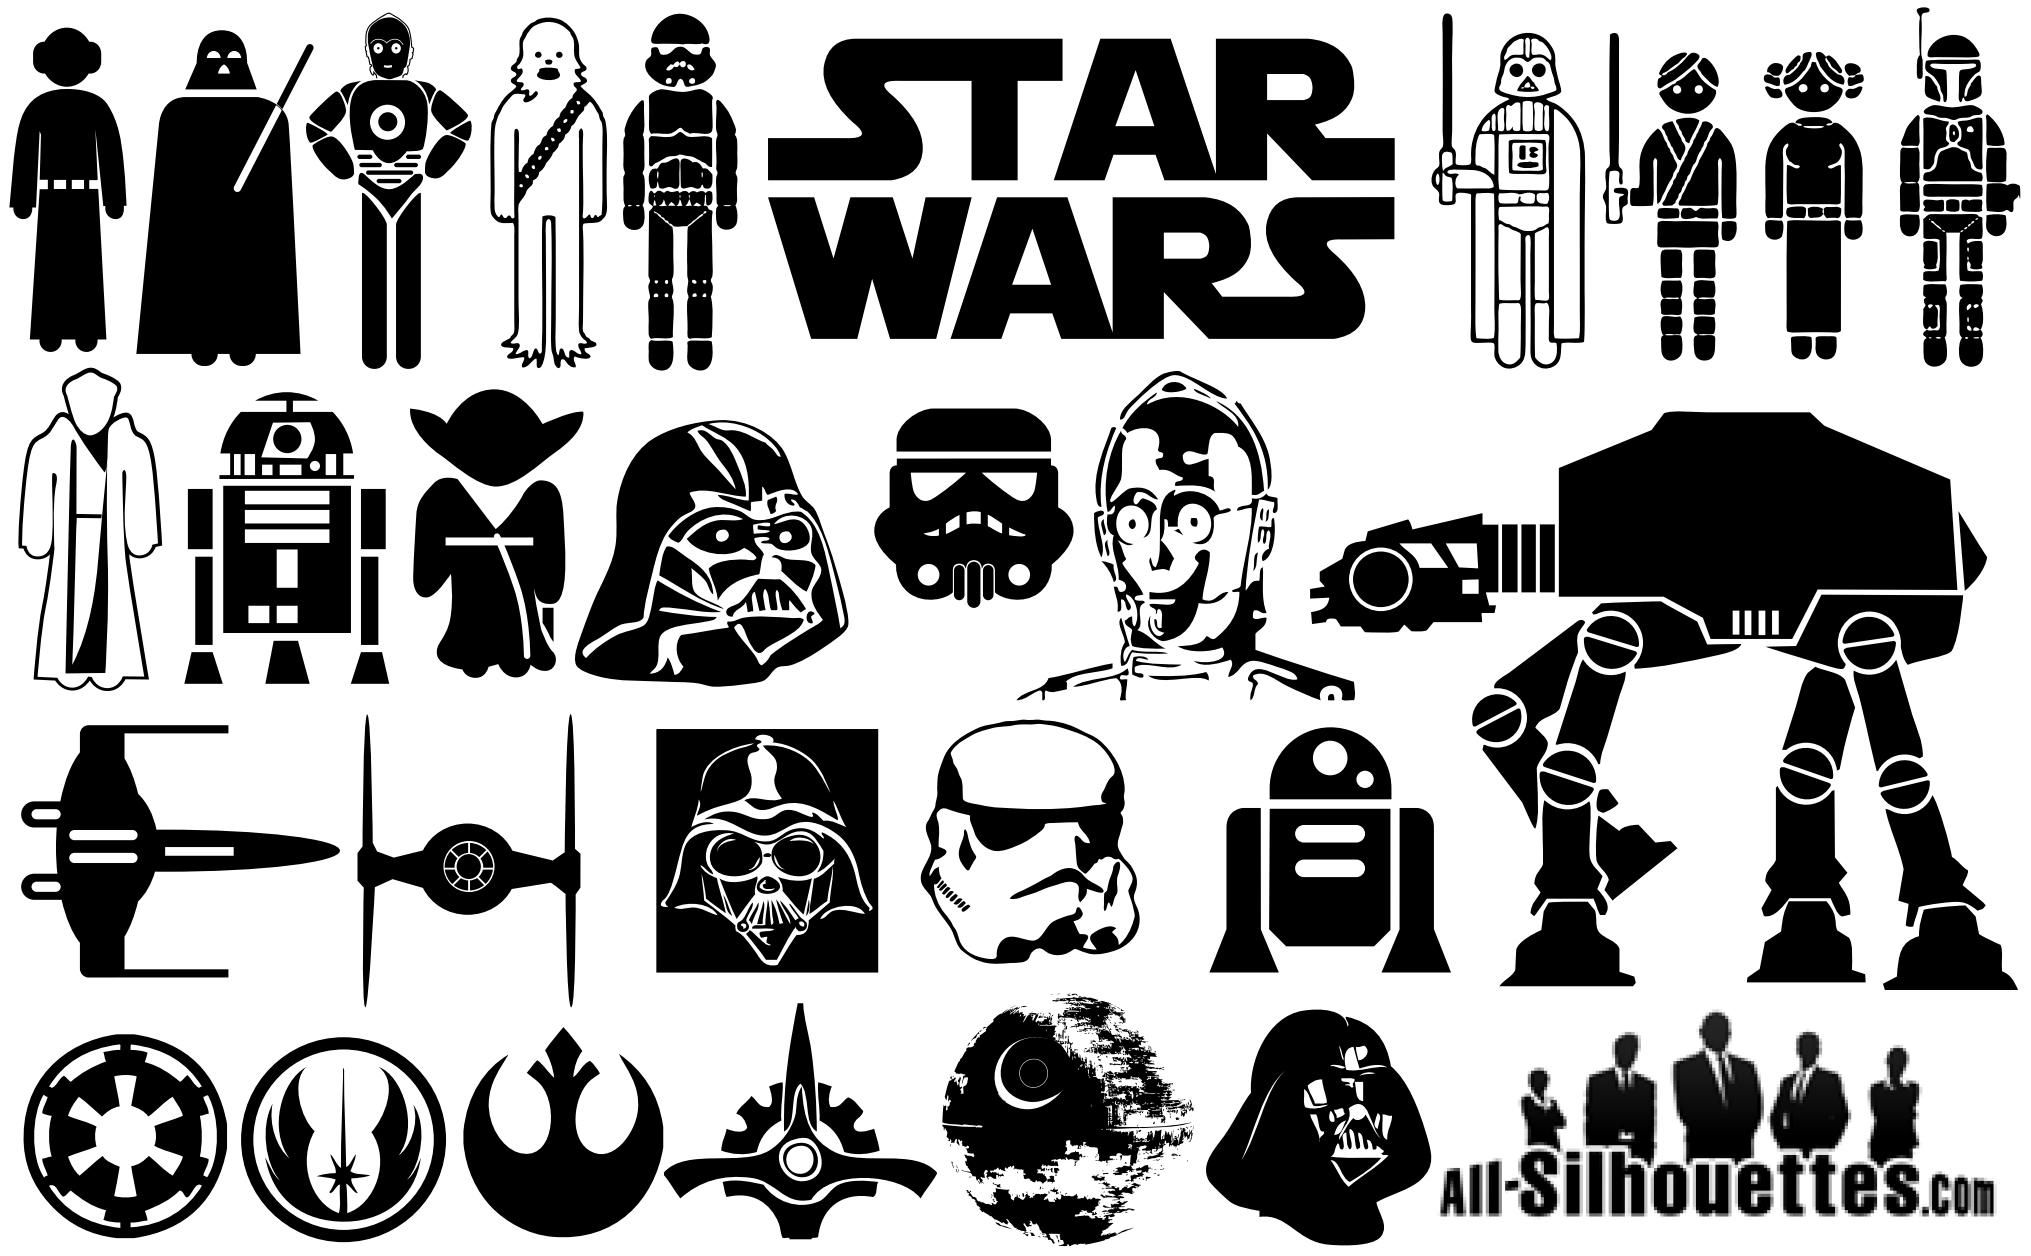 Star Wars Symbol Silhouettes Download Vector Star wars